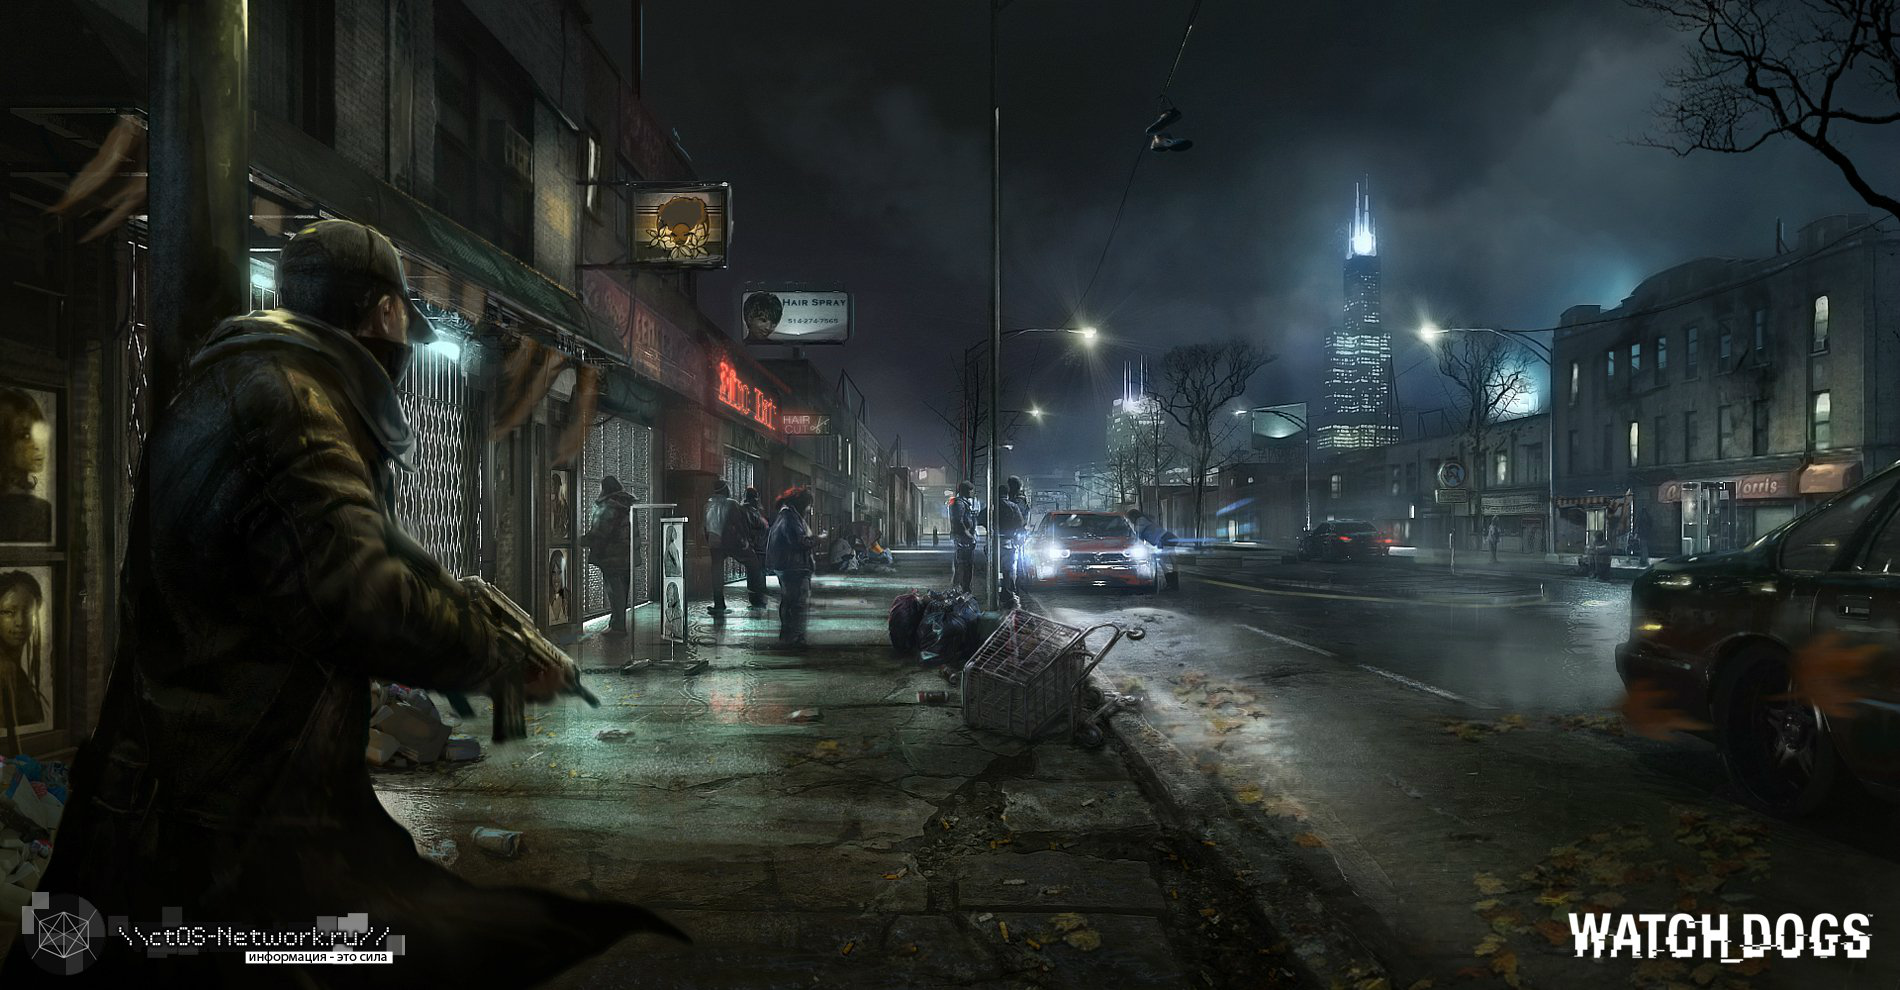 Watch_Dogs has seen several delays.